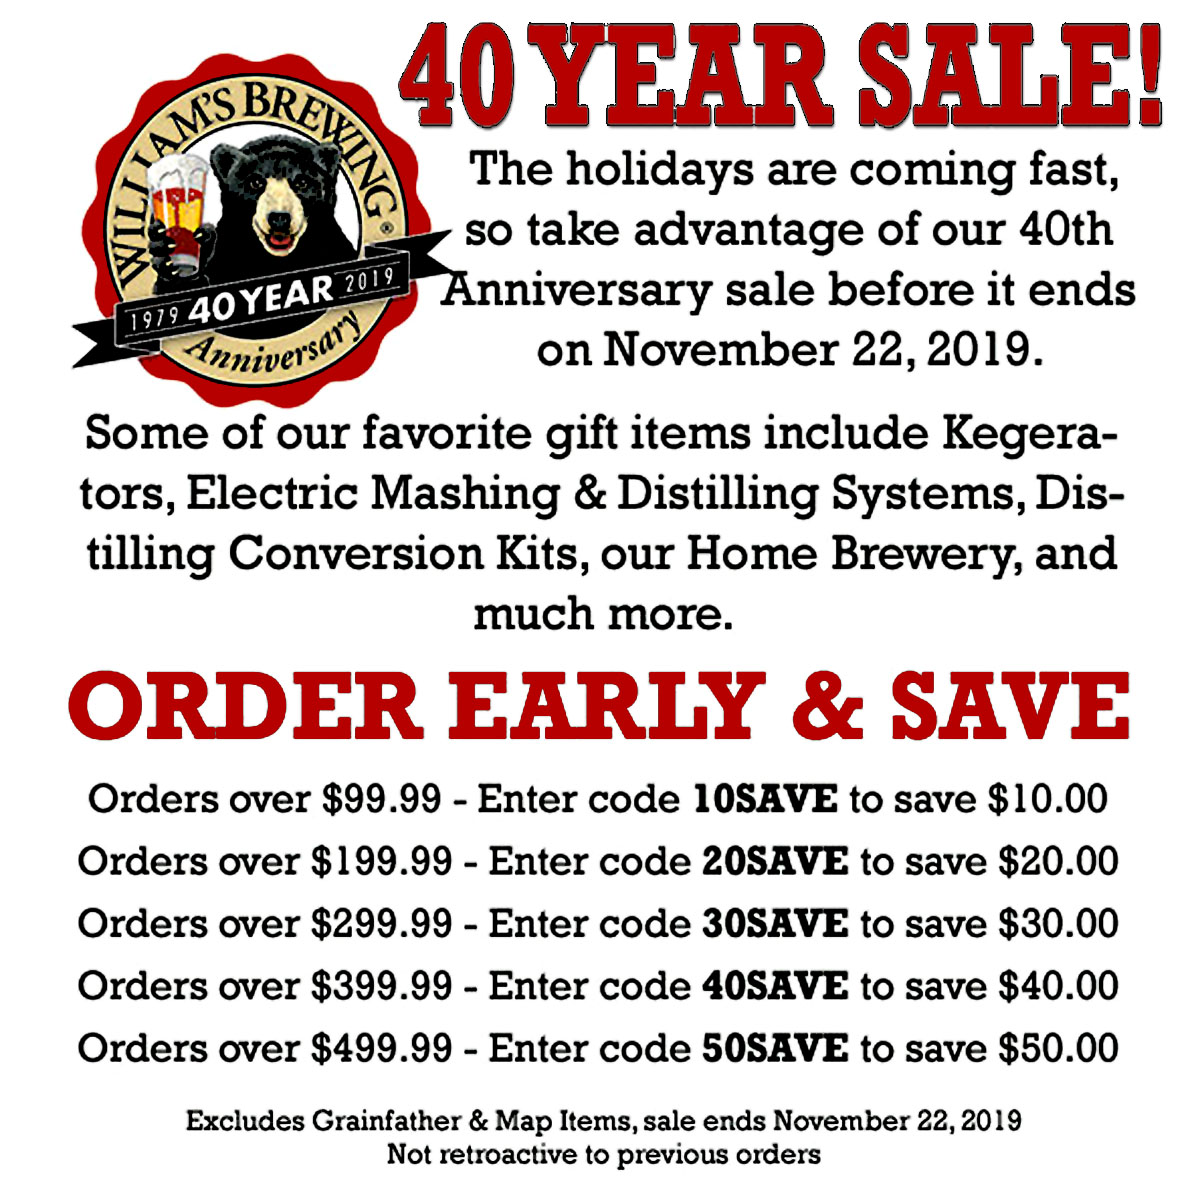 Home Wine Making Coupon Codes for Save As Much as $50 On Your WilliamsBrewing.com Purchase With This Williams Brewing Coupon Code for November. Coupon Code